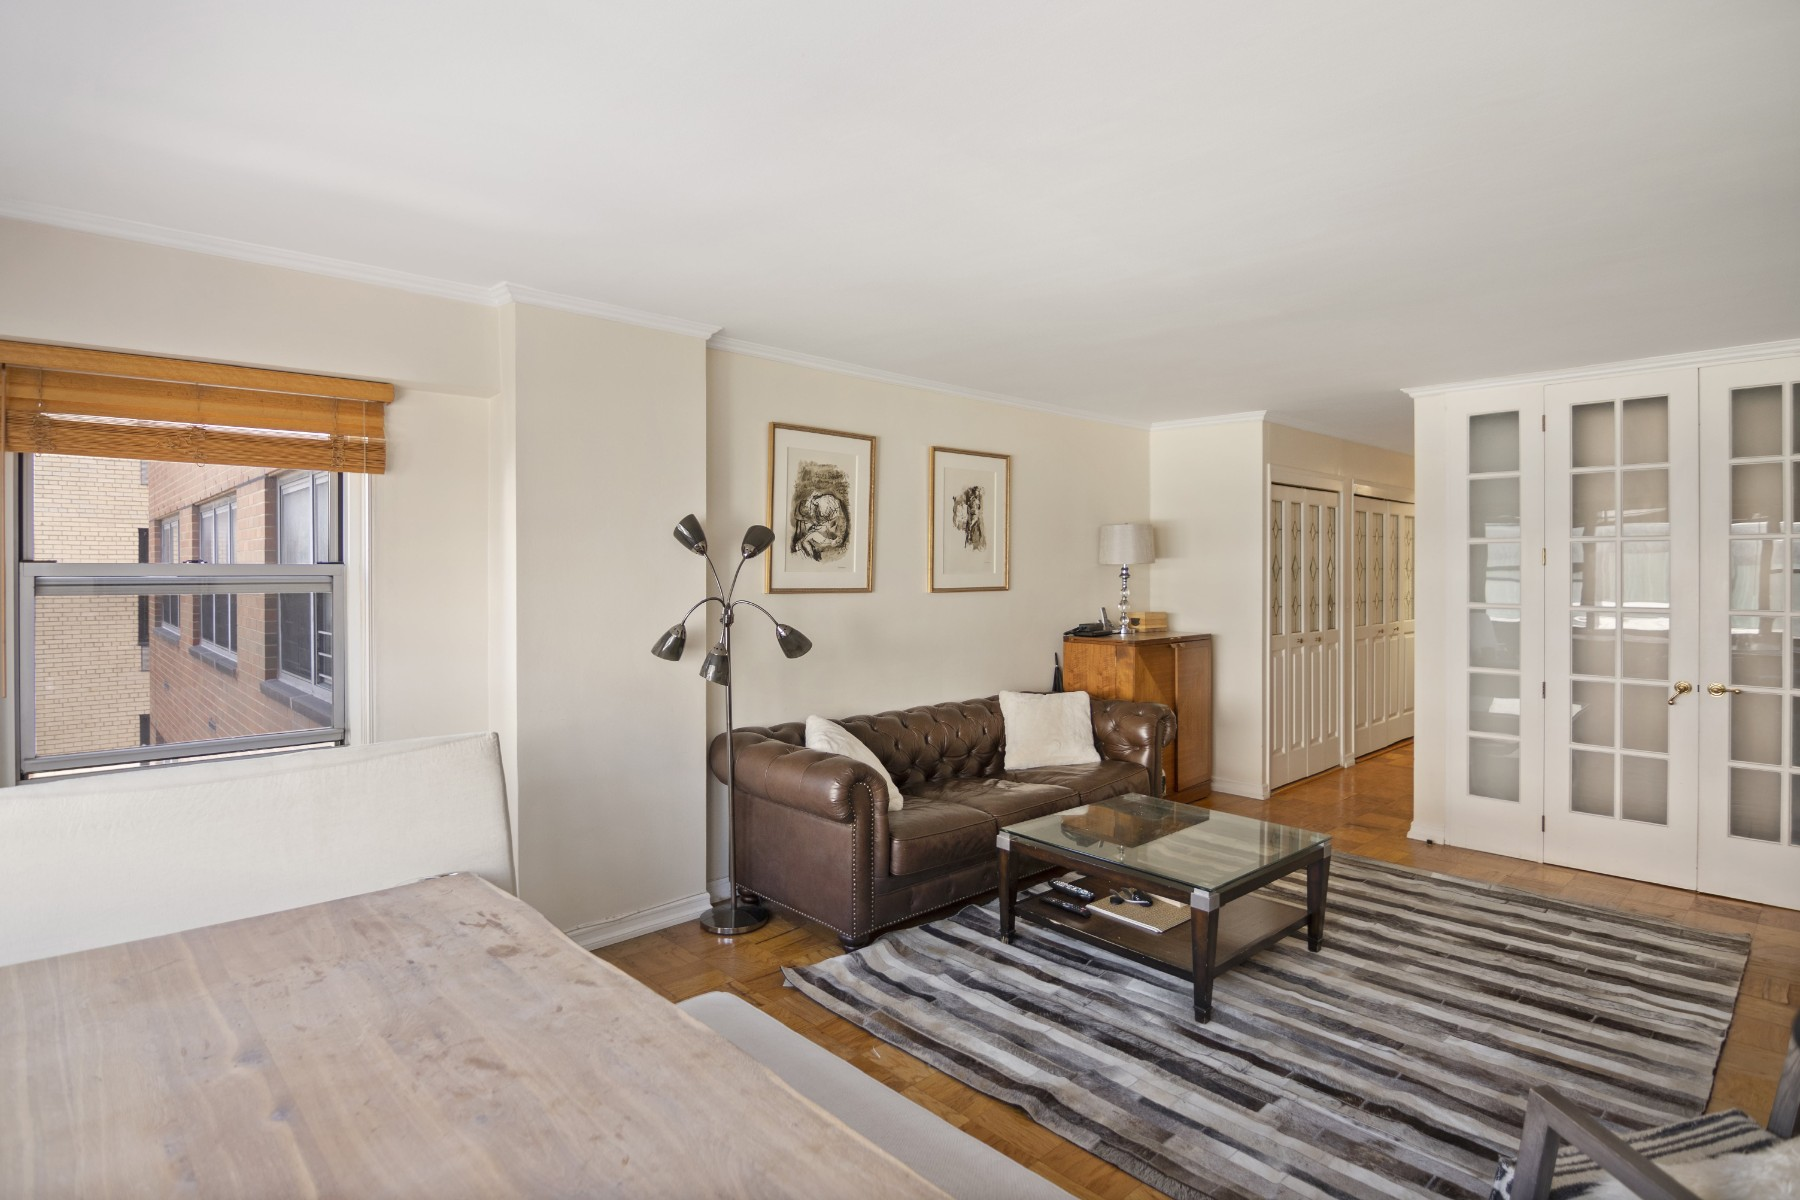 Apartment for sale at 27 East 65th Street, Apt 6C